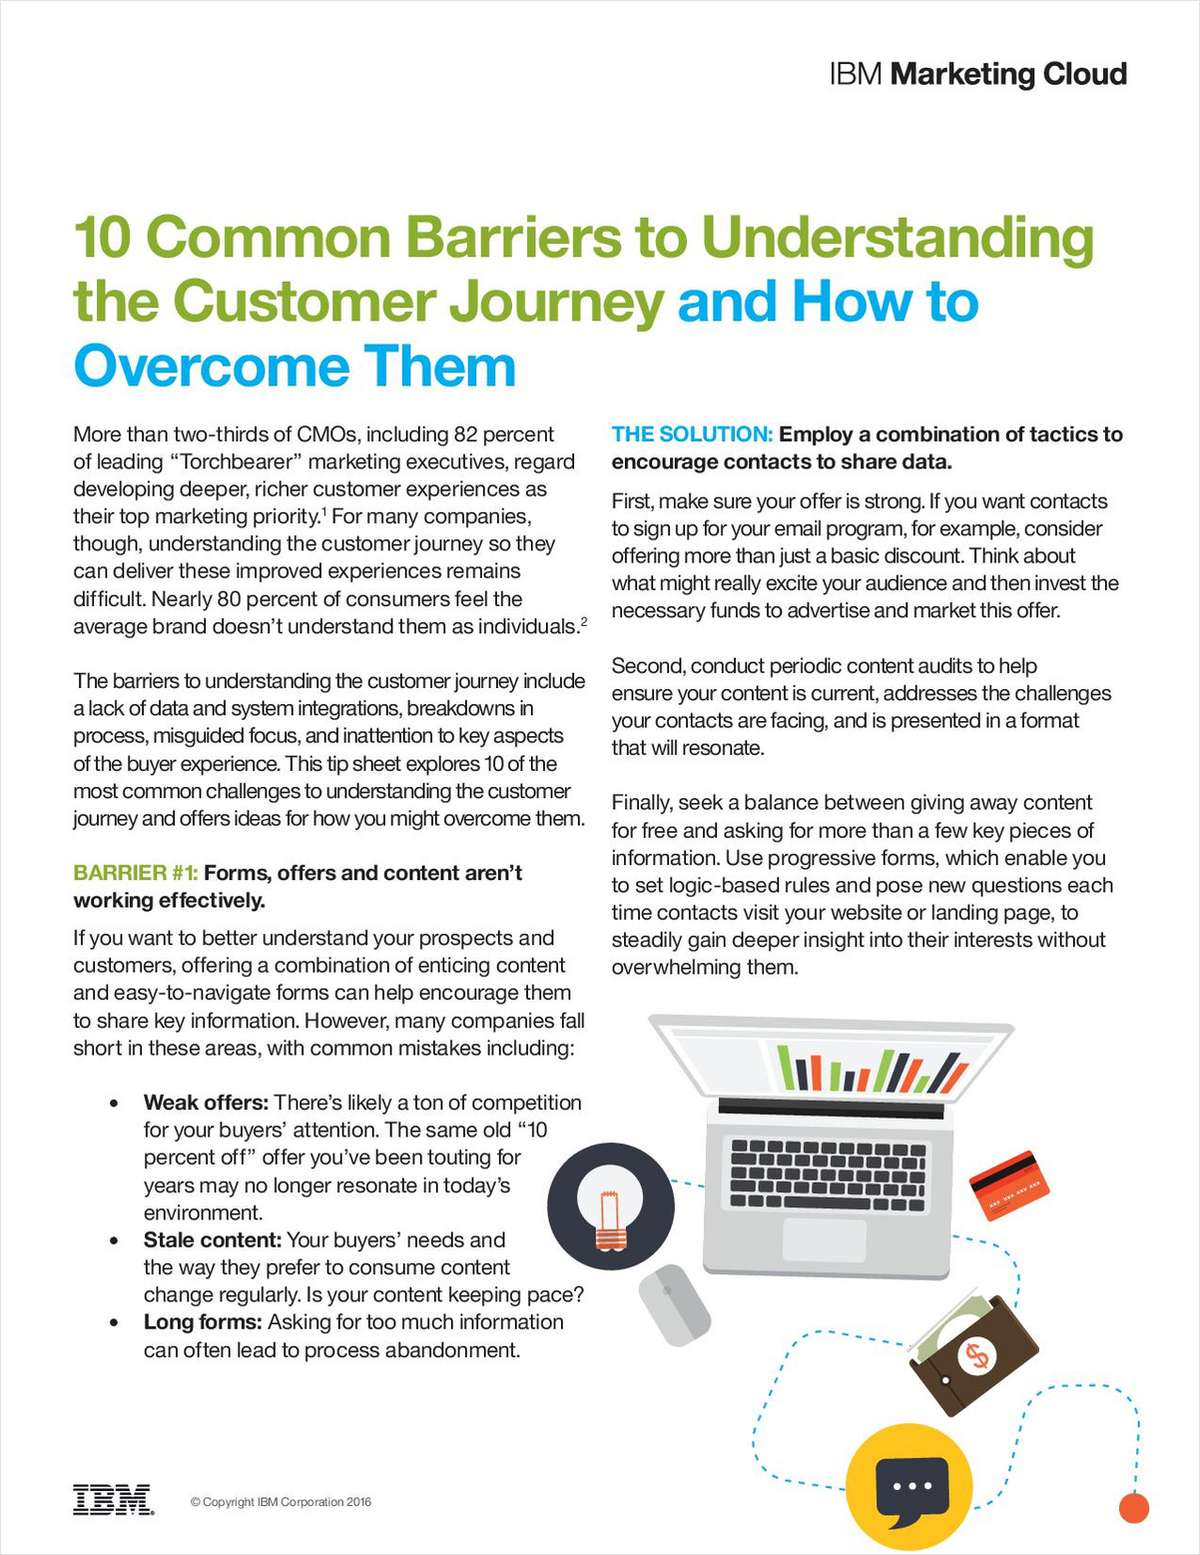 10 Common Barriers to Understanding the Customer Journey and How to Overcome Them